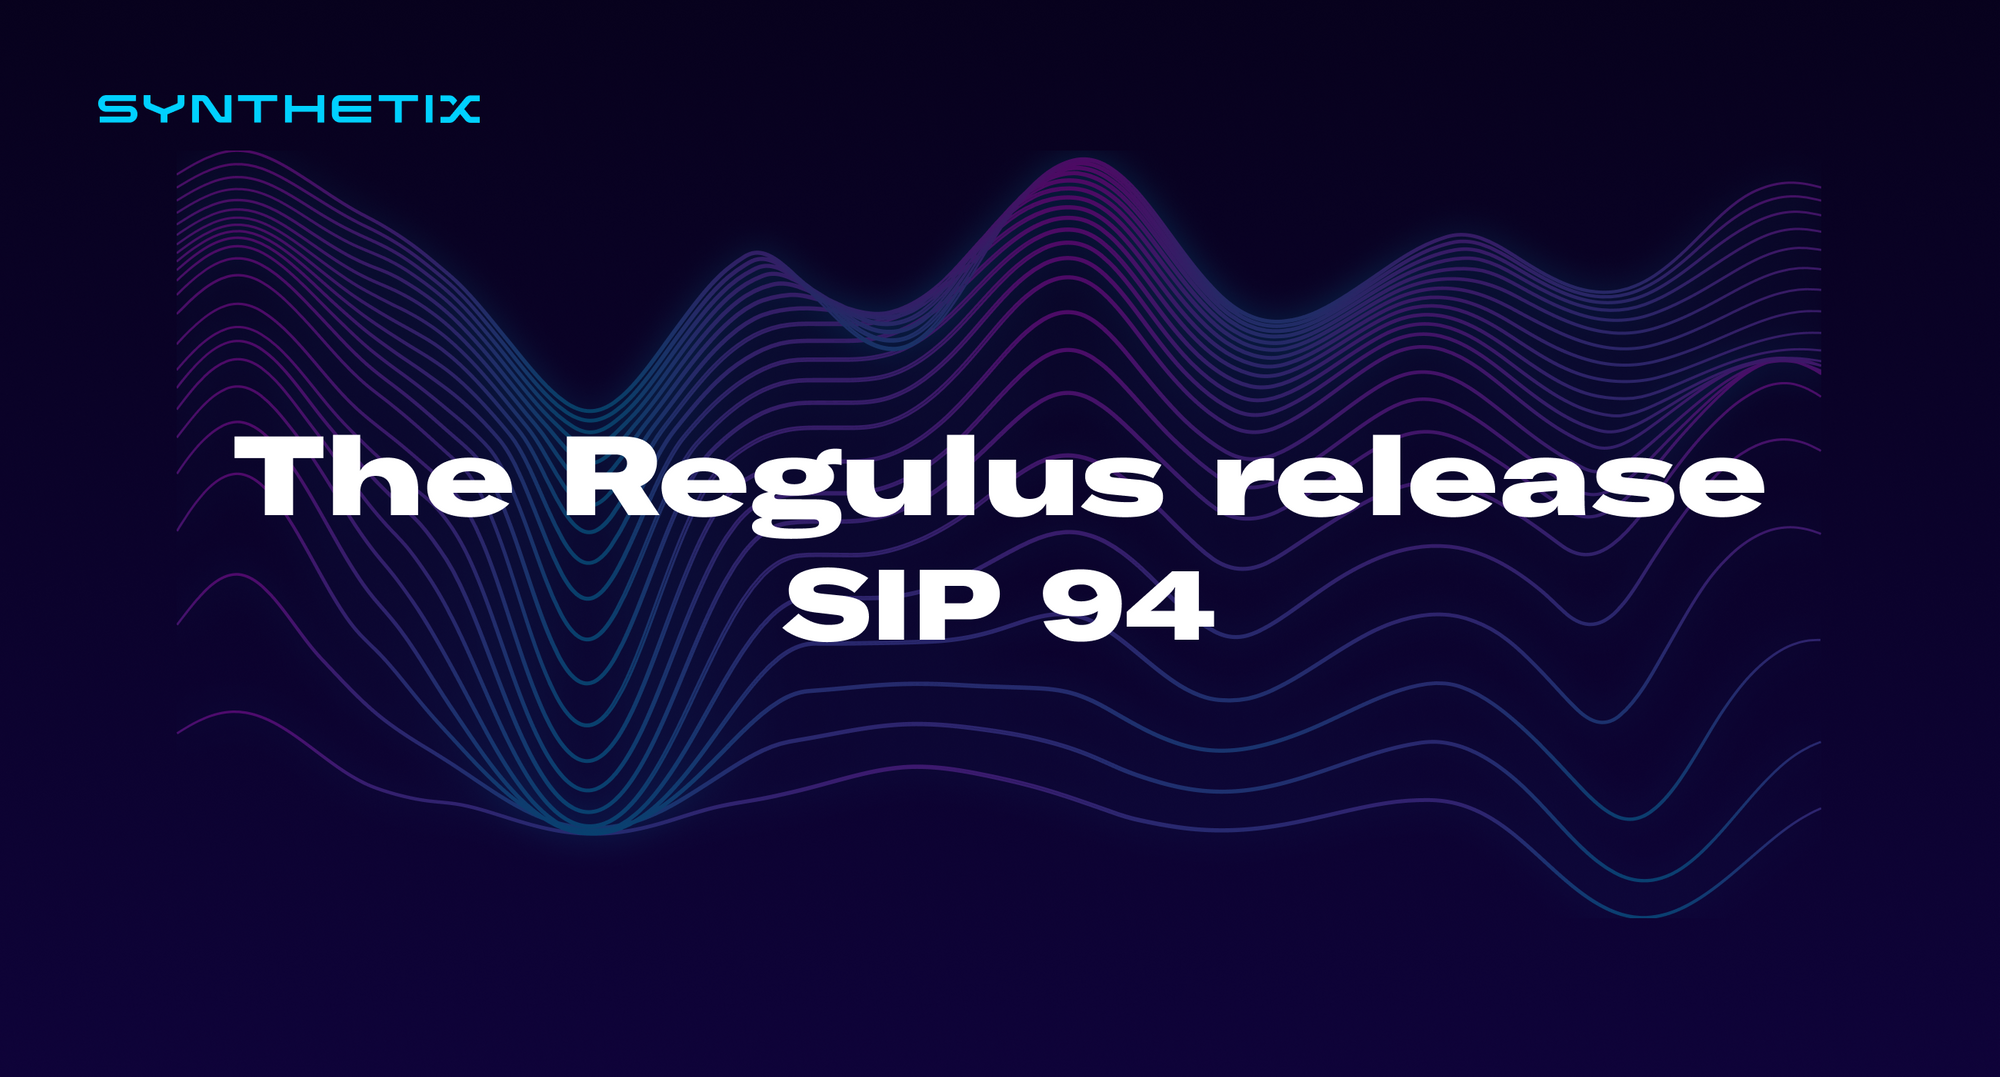 The Regulus release